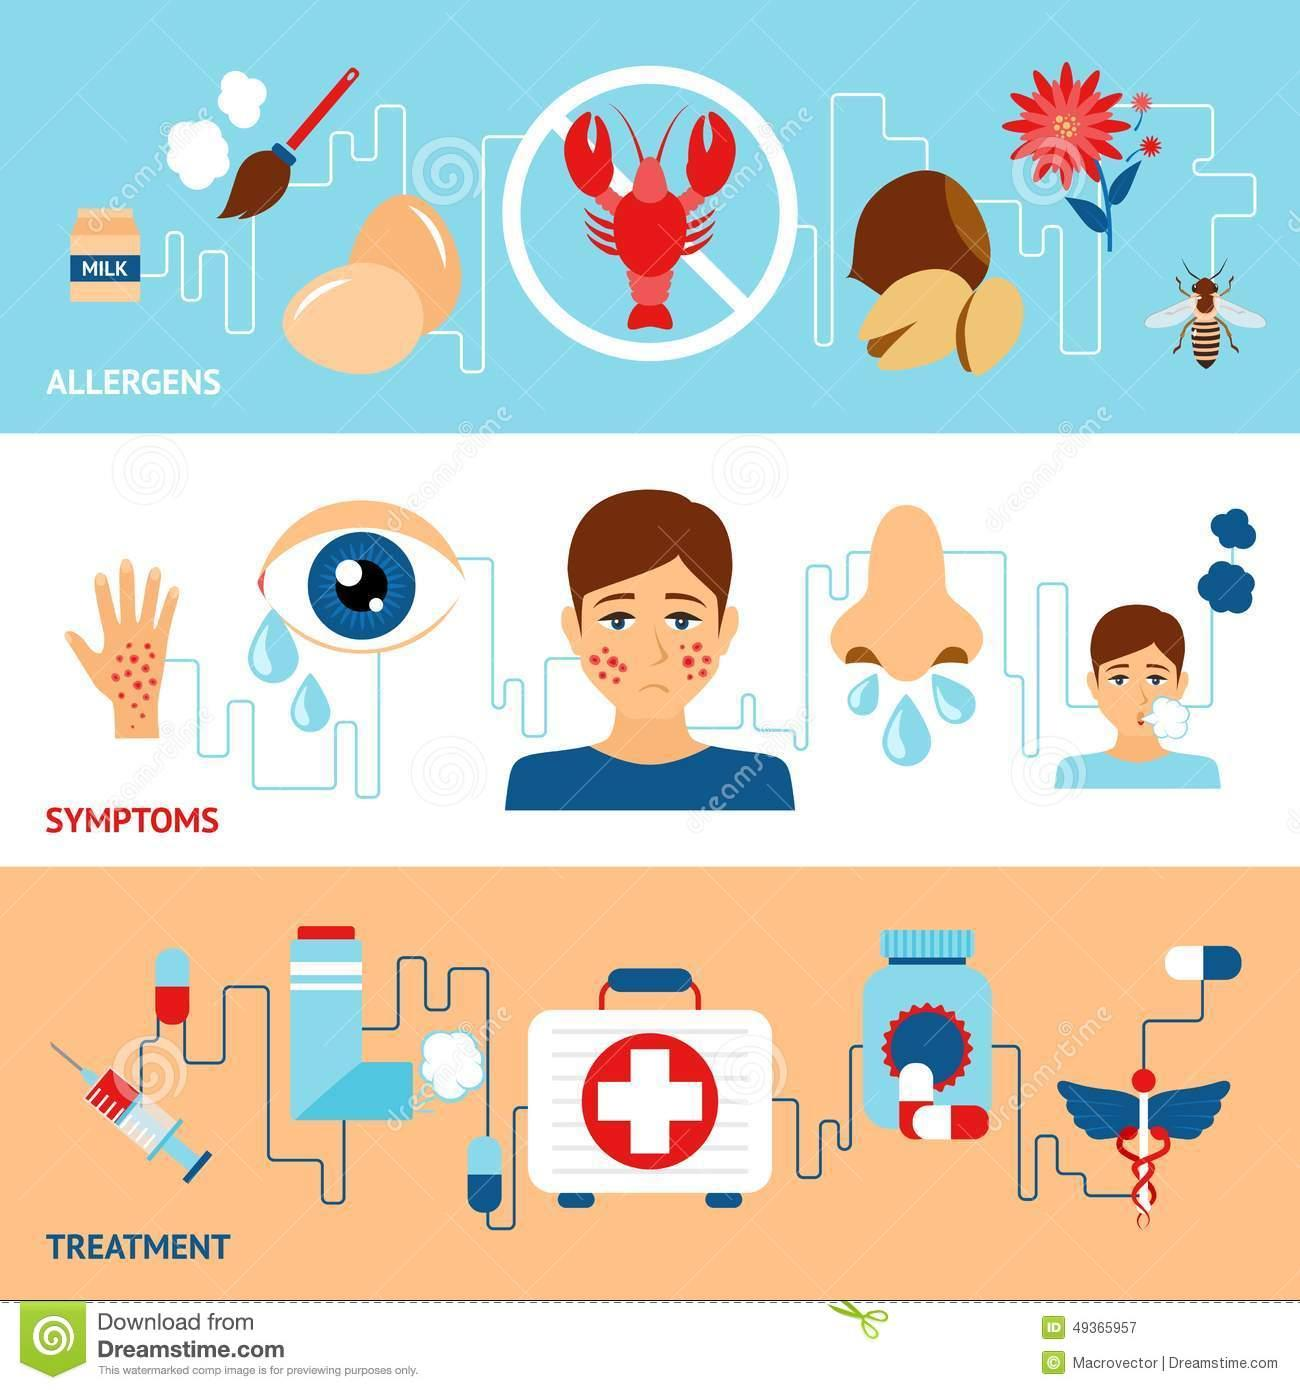 Allergy Symptoms Clipart.